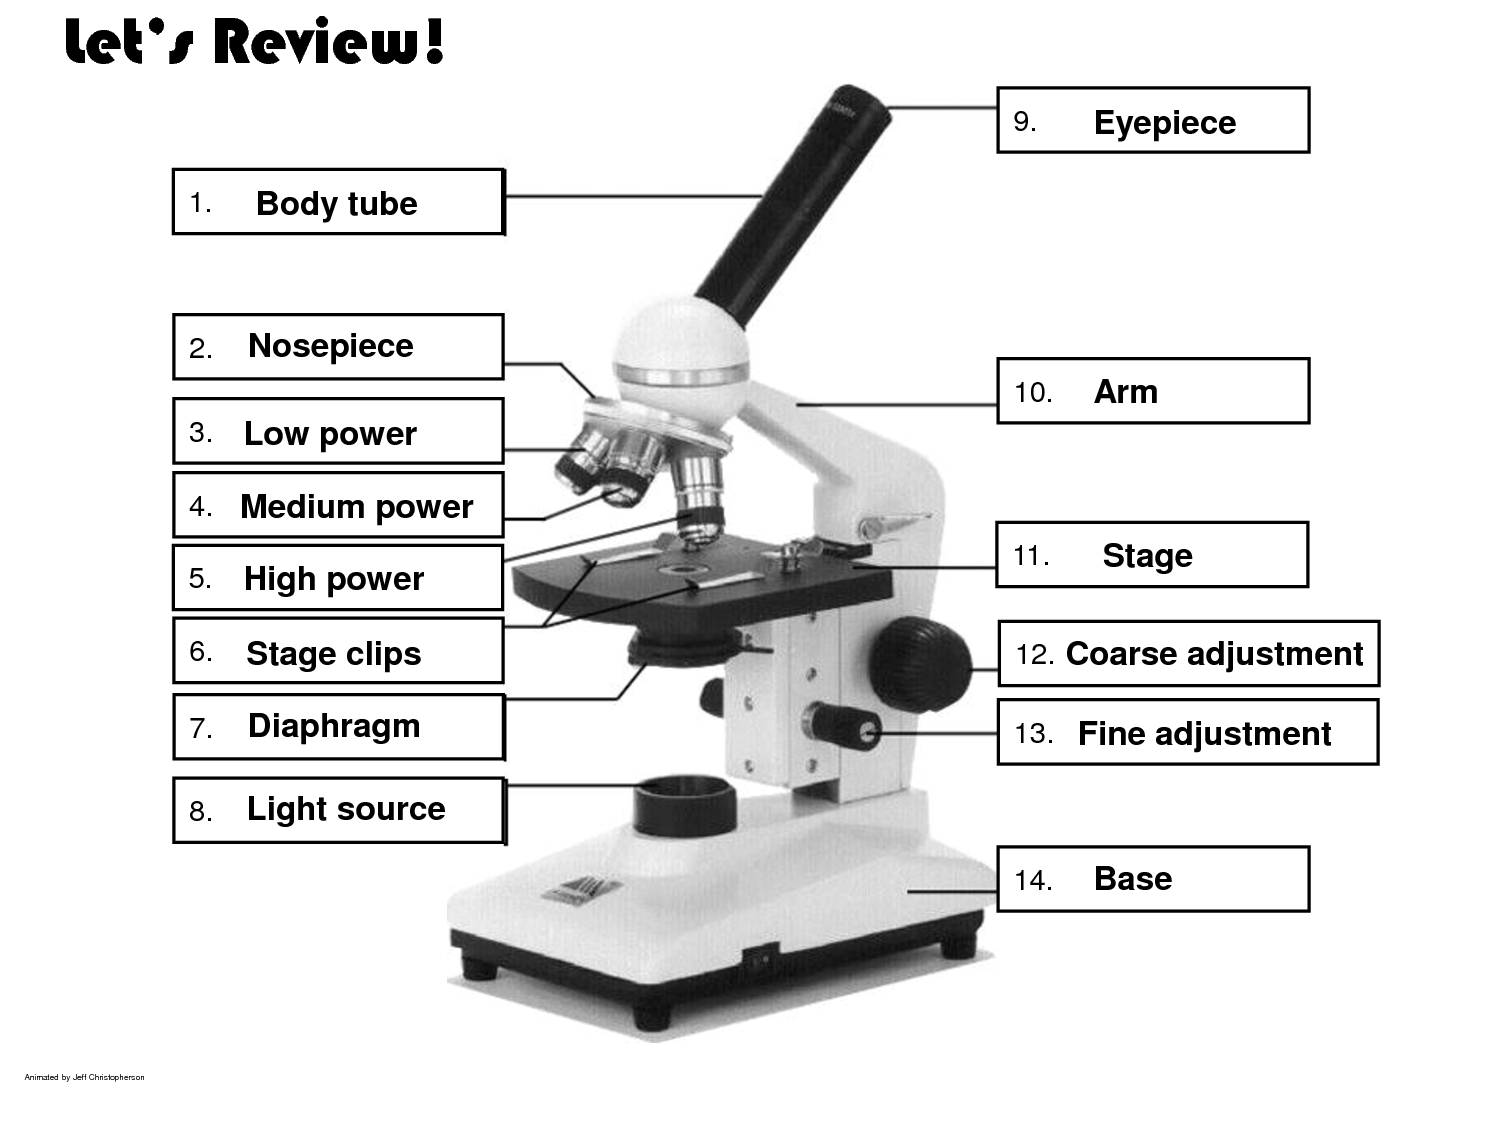 worksheet. Microscope Parts Worksheet. joindesignseattle Worksheet  education, grade worksheets, learning, worksheets for teachers, and math worksheets Compound Microscope Parts And Functions Worksheet 1125 x 1500